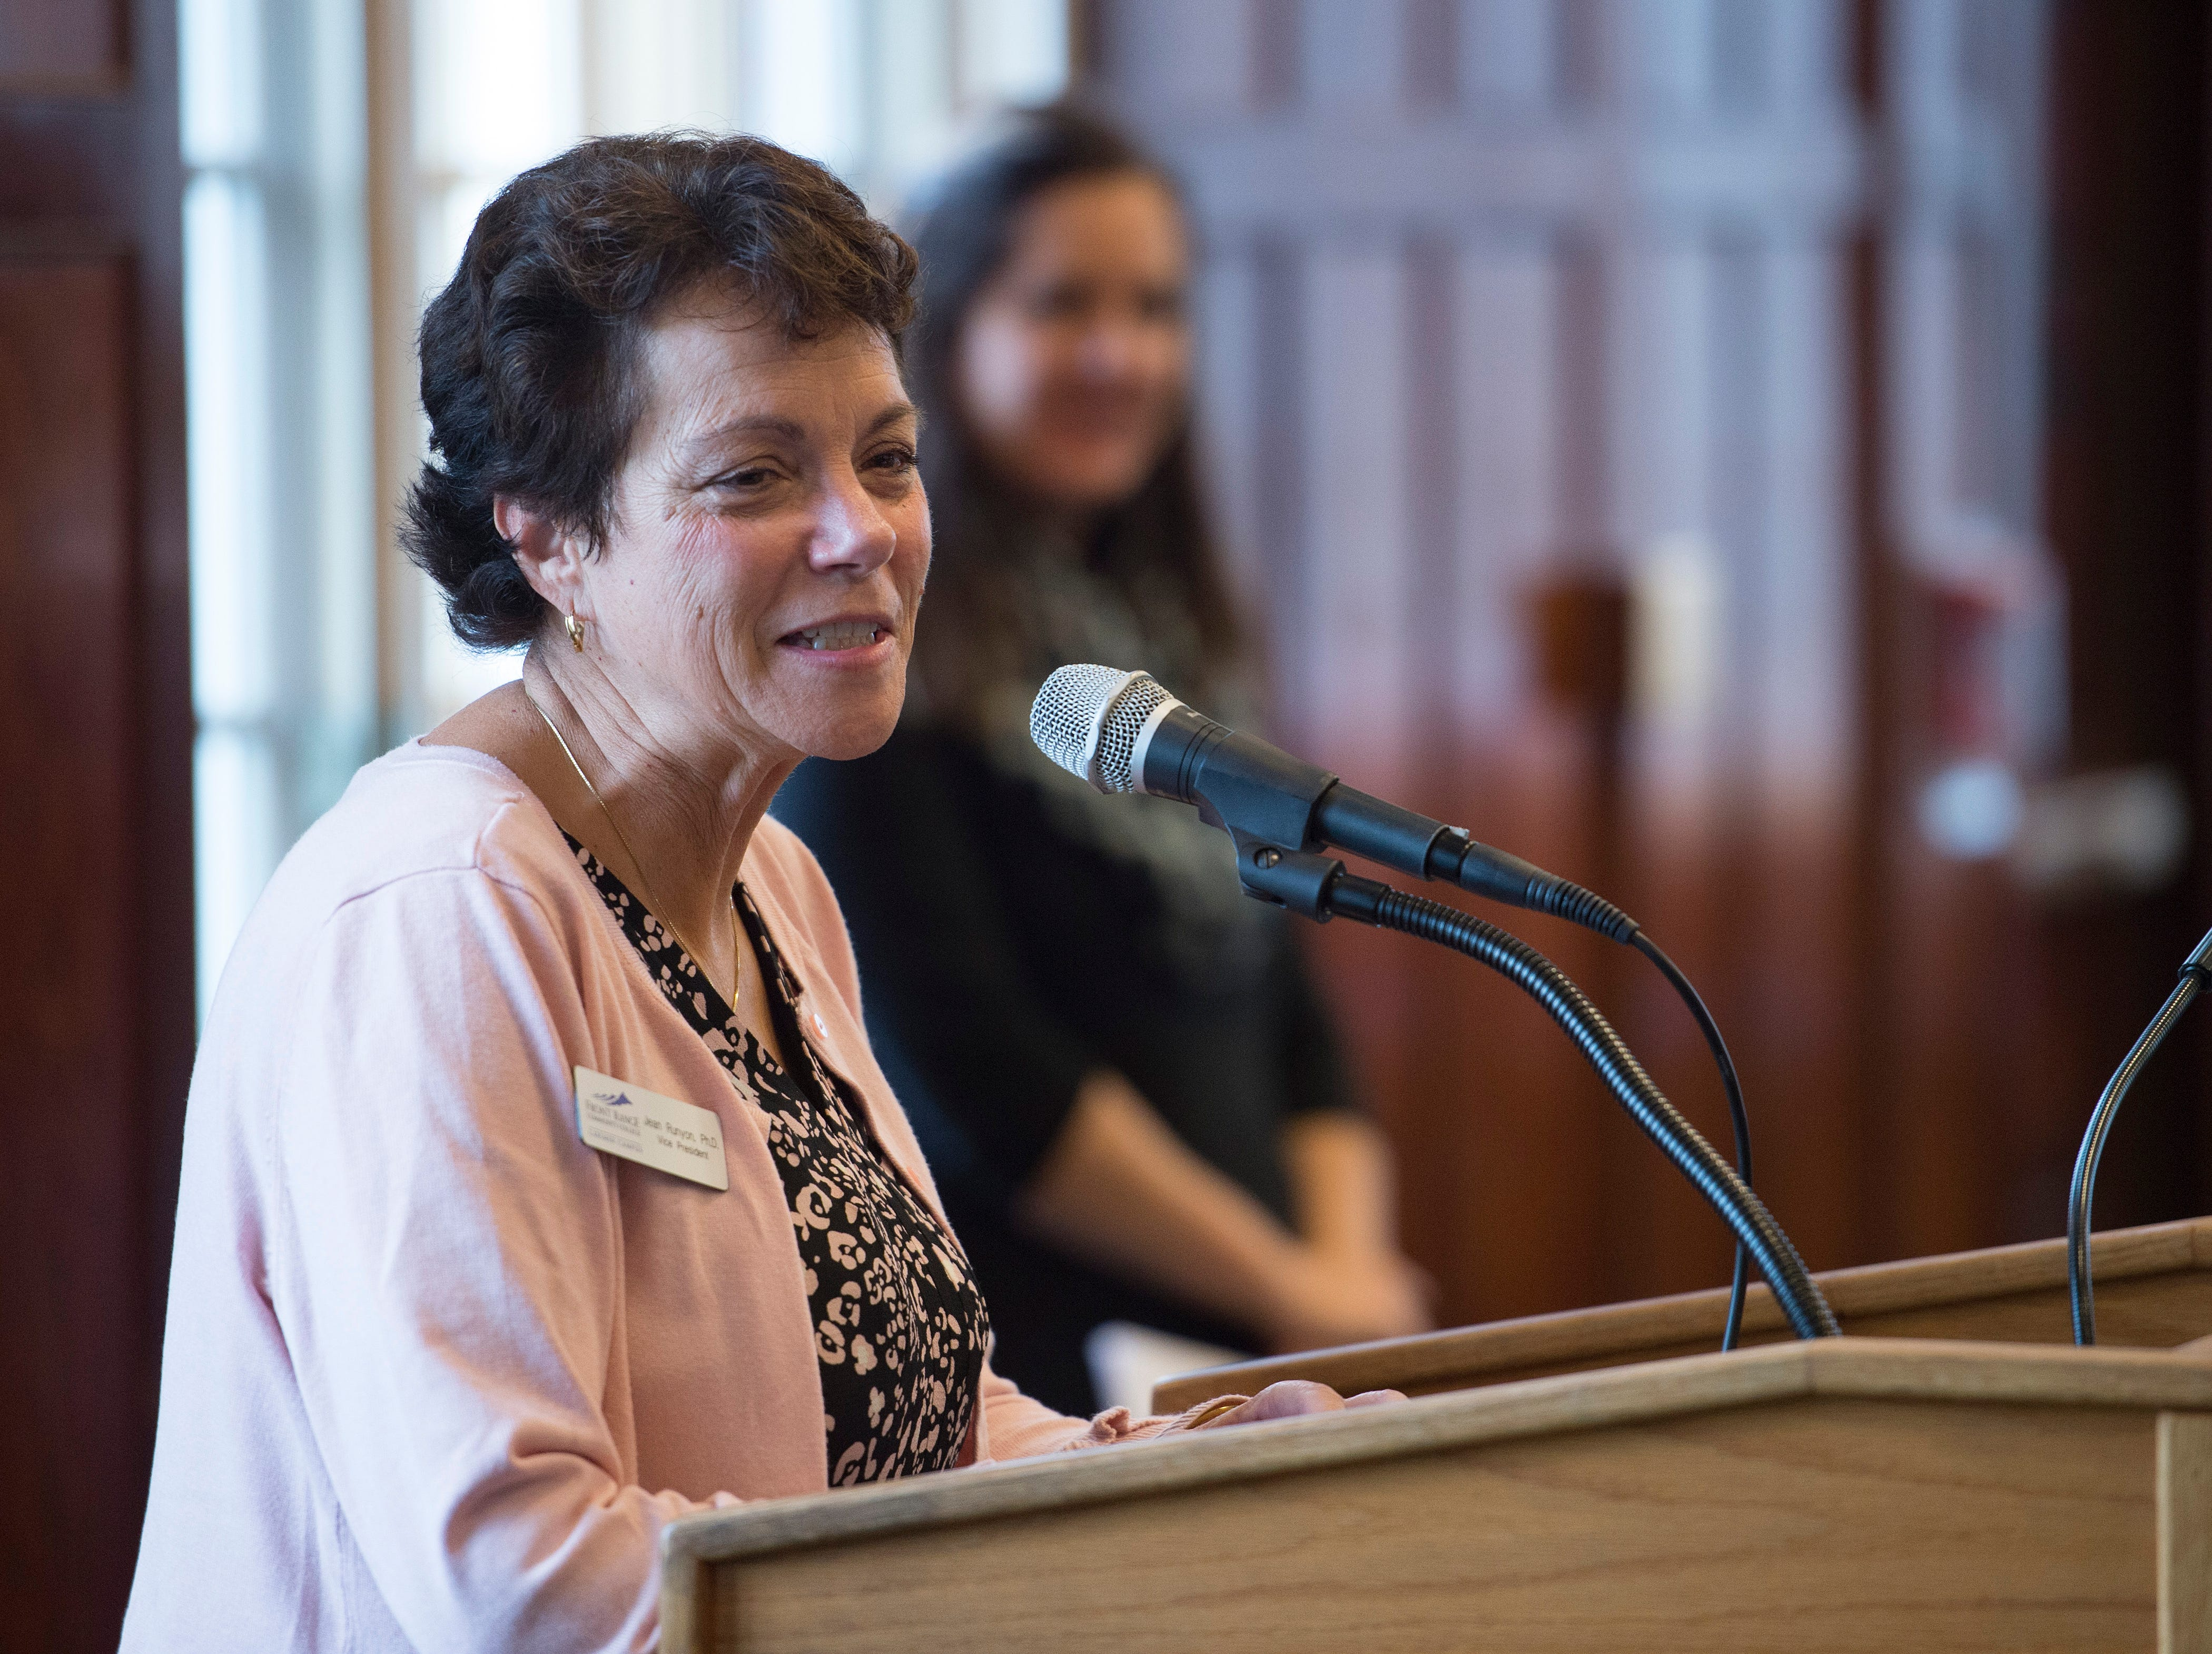 Jean Runyon, representing Front Range Community College, speaks during the Coloradoan's First Class banquet at the University of Northern Colorado in Greeley on Saturday, October 6, 2018. First Class is a program that supports first-generation students in Northern Colorado. The program is now in its third year and is a partnership between The Coloradoan and Aims Community College, Fort Collins Lions Club, Front Range Community College, Colorado State University, Canvas Credit Union (formerly Public Service Credit Union) and University of Northern Colorado.